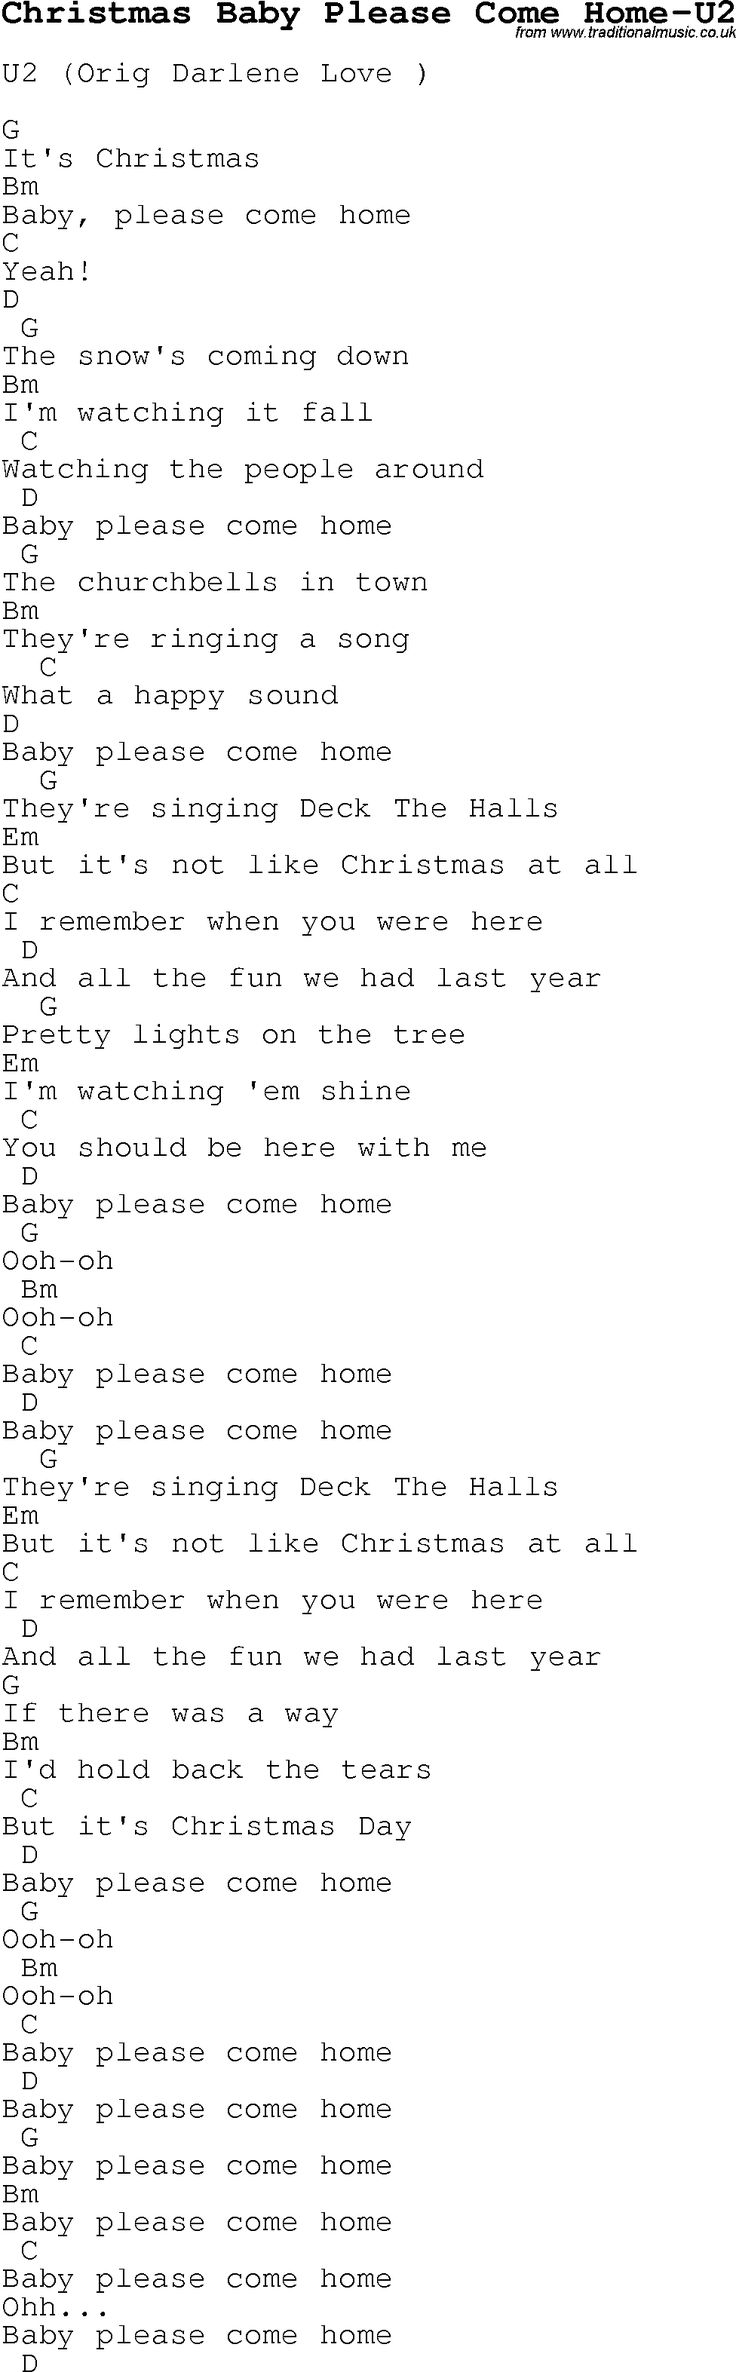 Best 25 come home lyrics ideas on pinterest photograph ed christmas songs and carols lyrics with chords for guitar banjo for christmas baby please come hexwebz Gallery